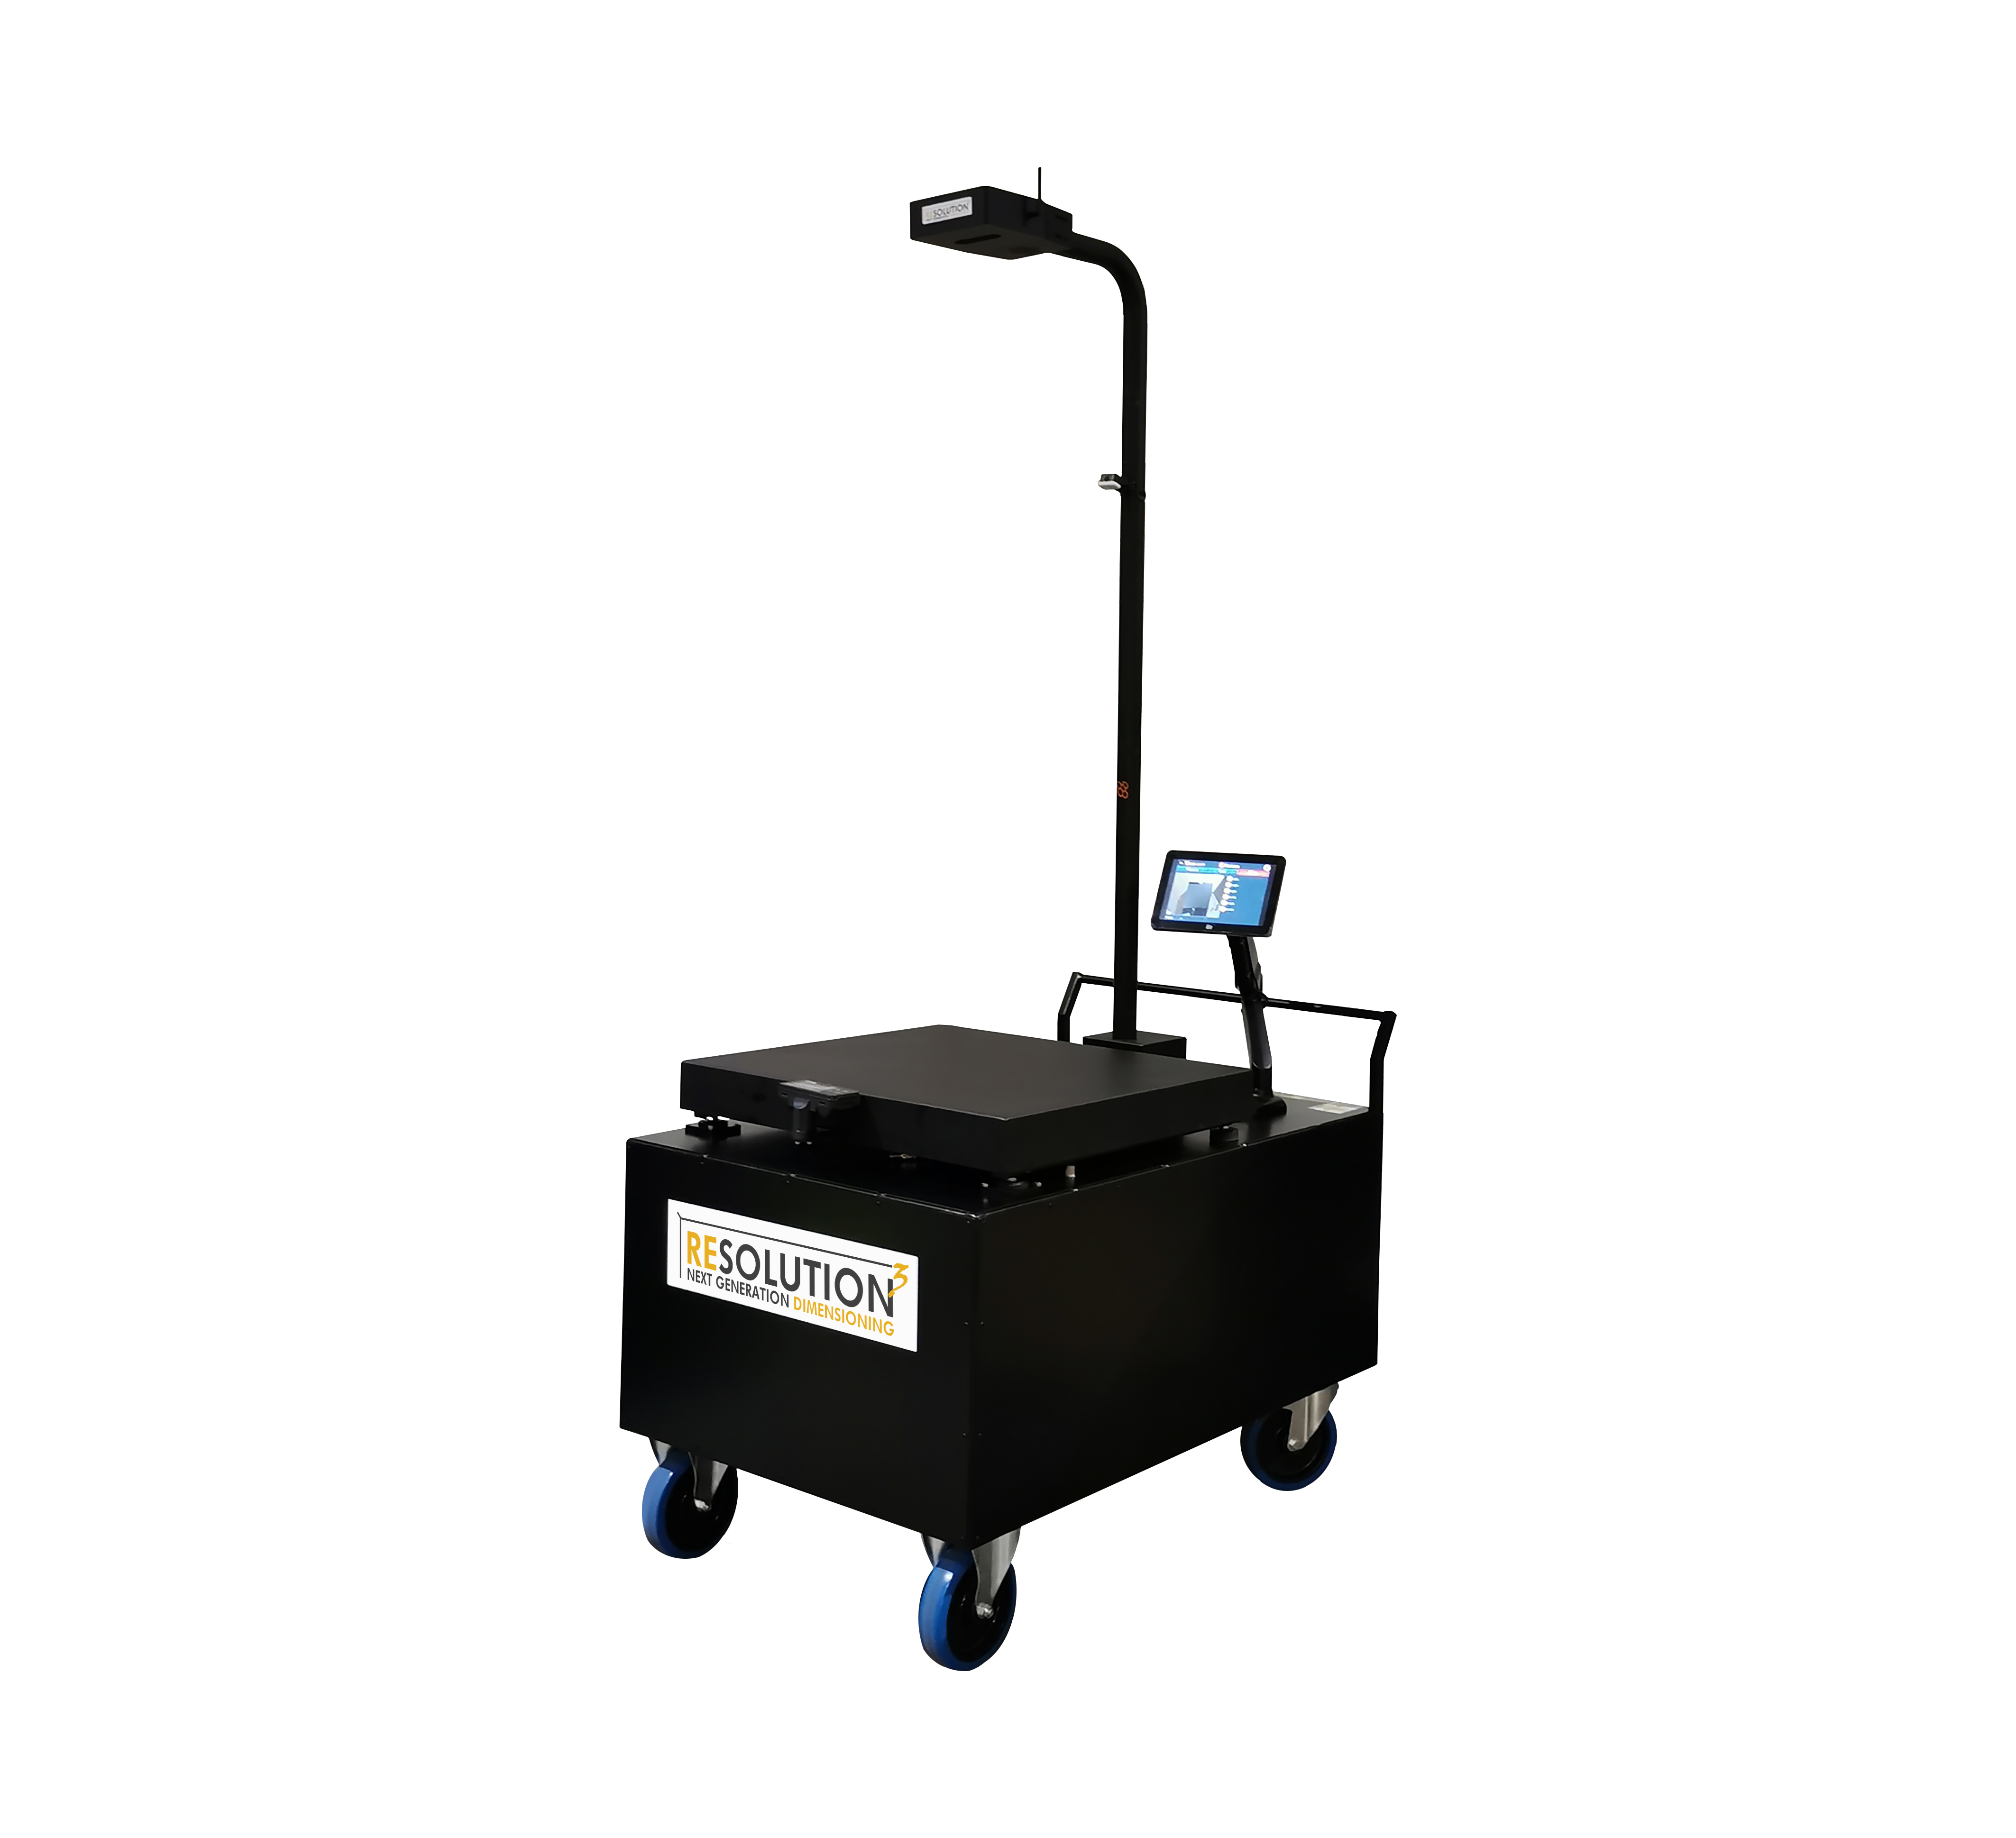 Resolution 3 The Portable Parcel Weigh Dimensioner, dimensioning